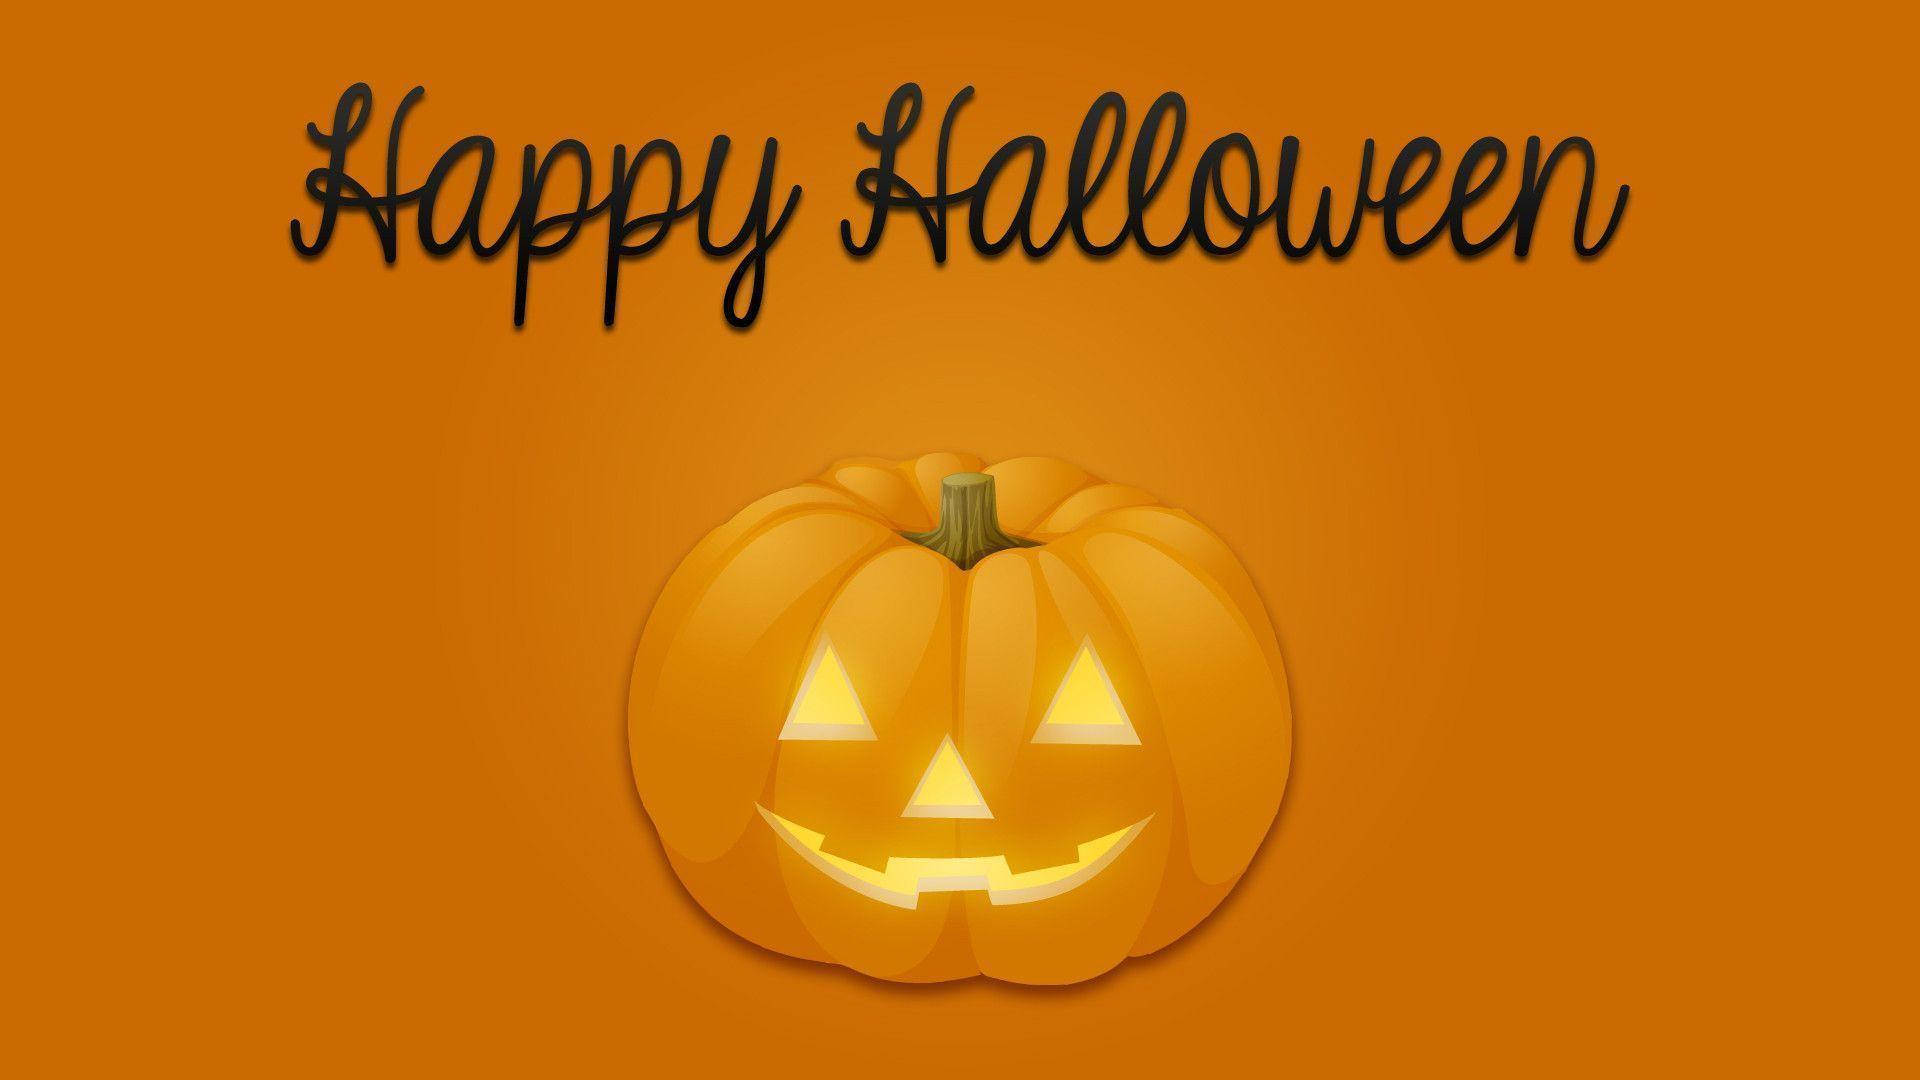 happy halloween wallpapers - photo #1